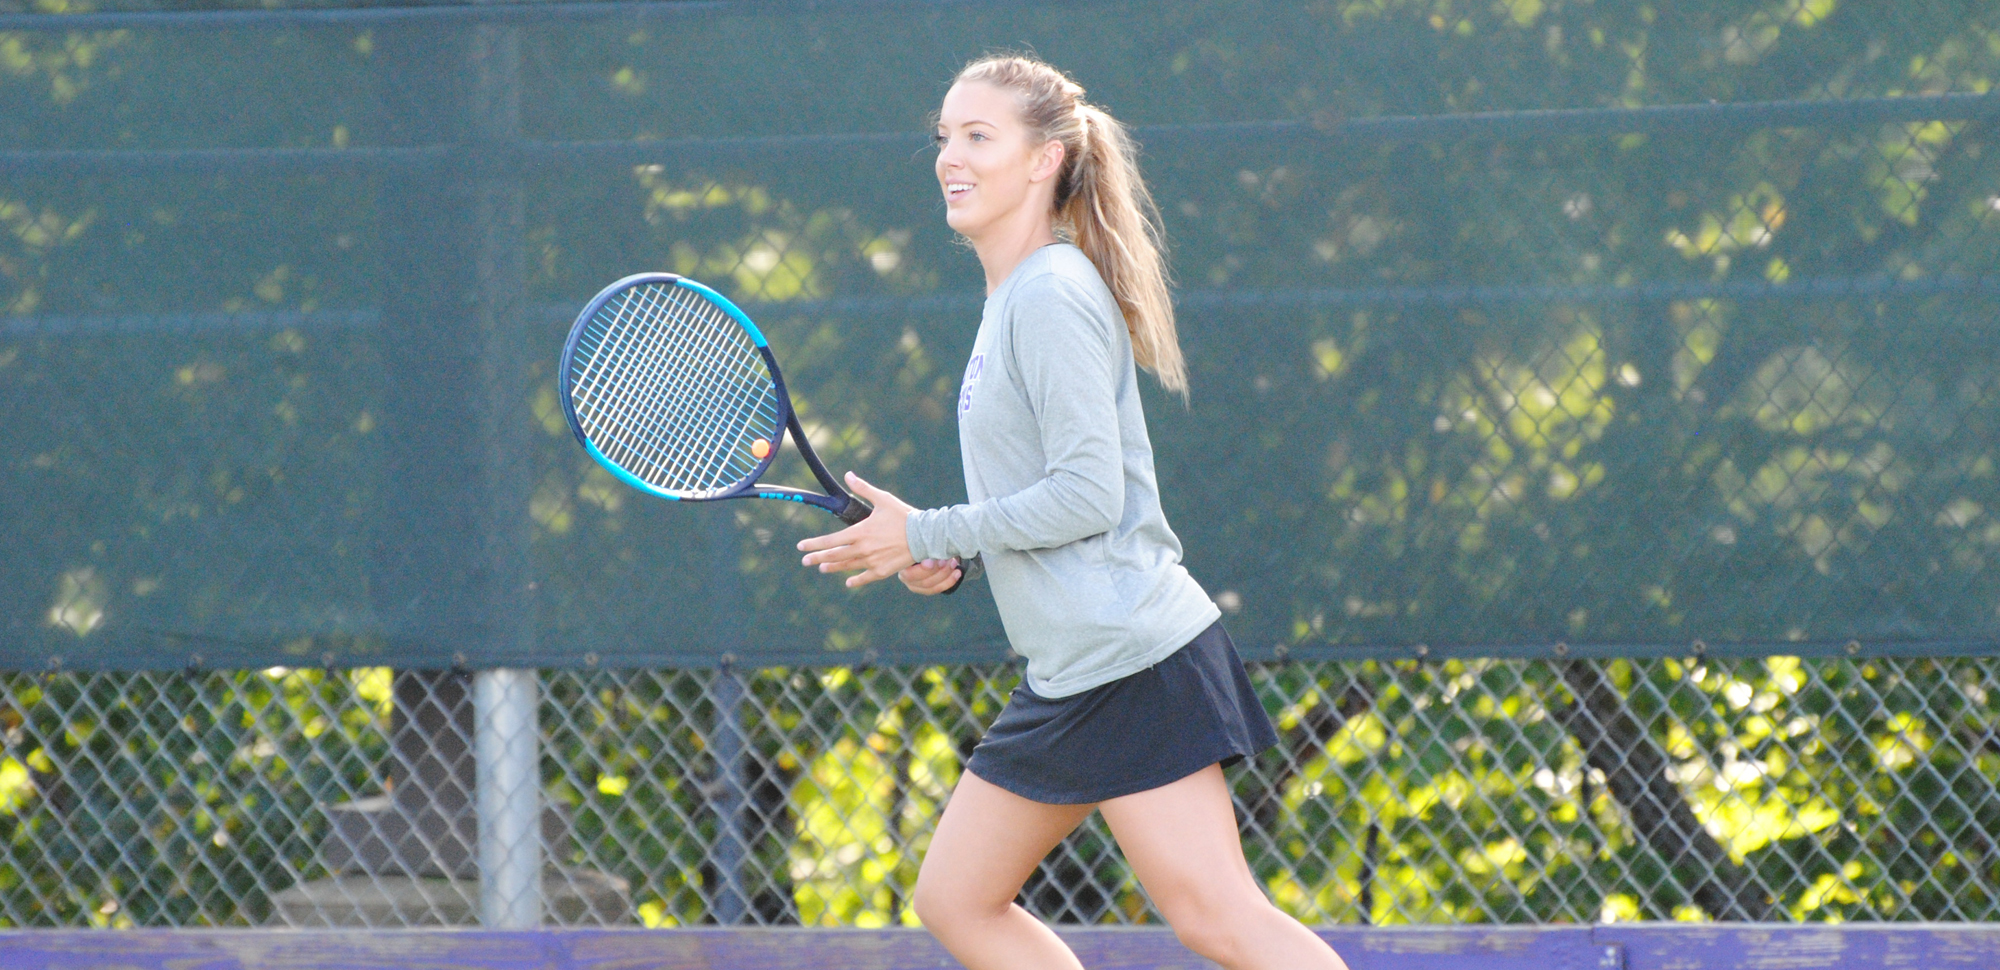 Sophomore Marissa Campo won at no. 4 singles for the Royals on Thursday against Dickinson.